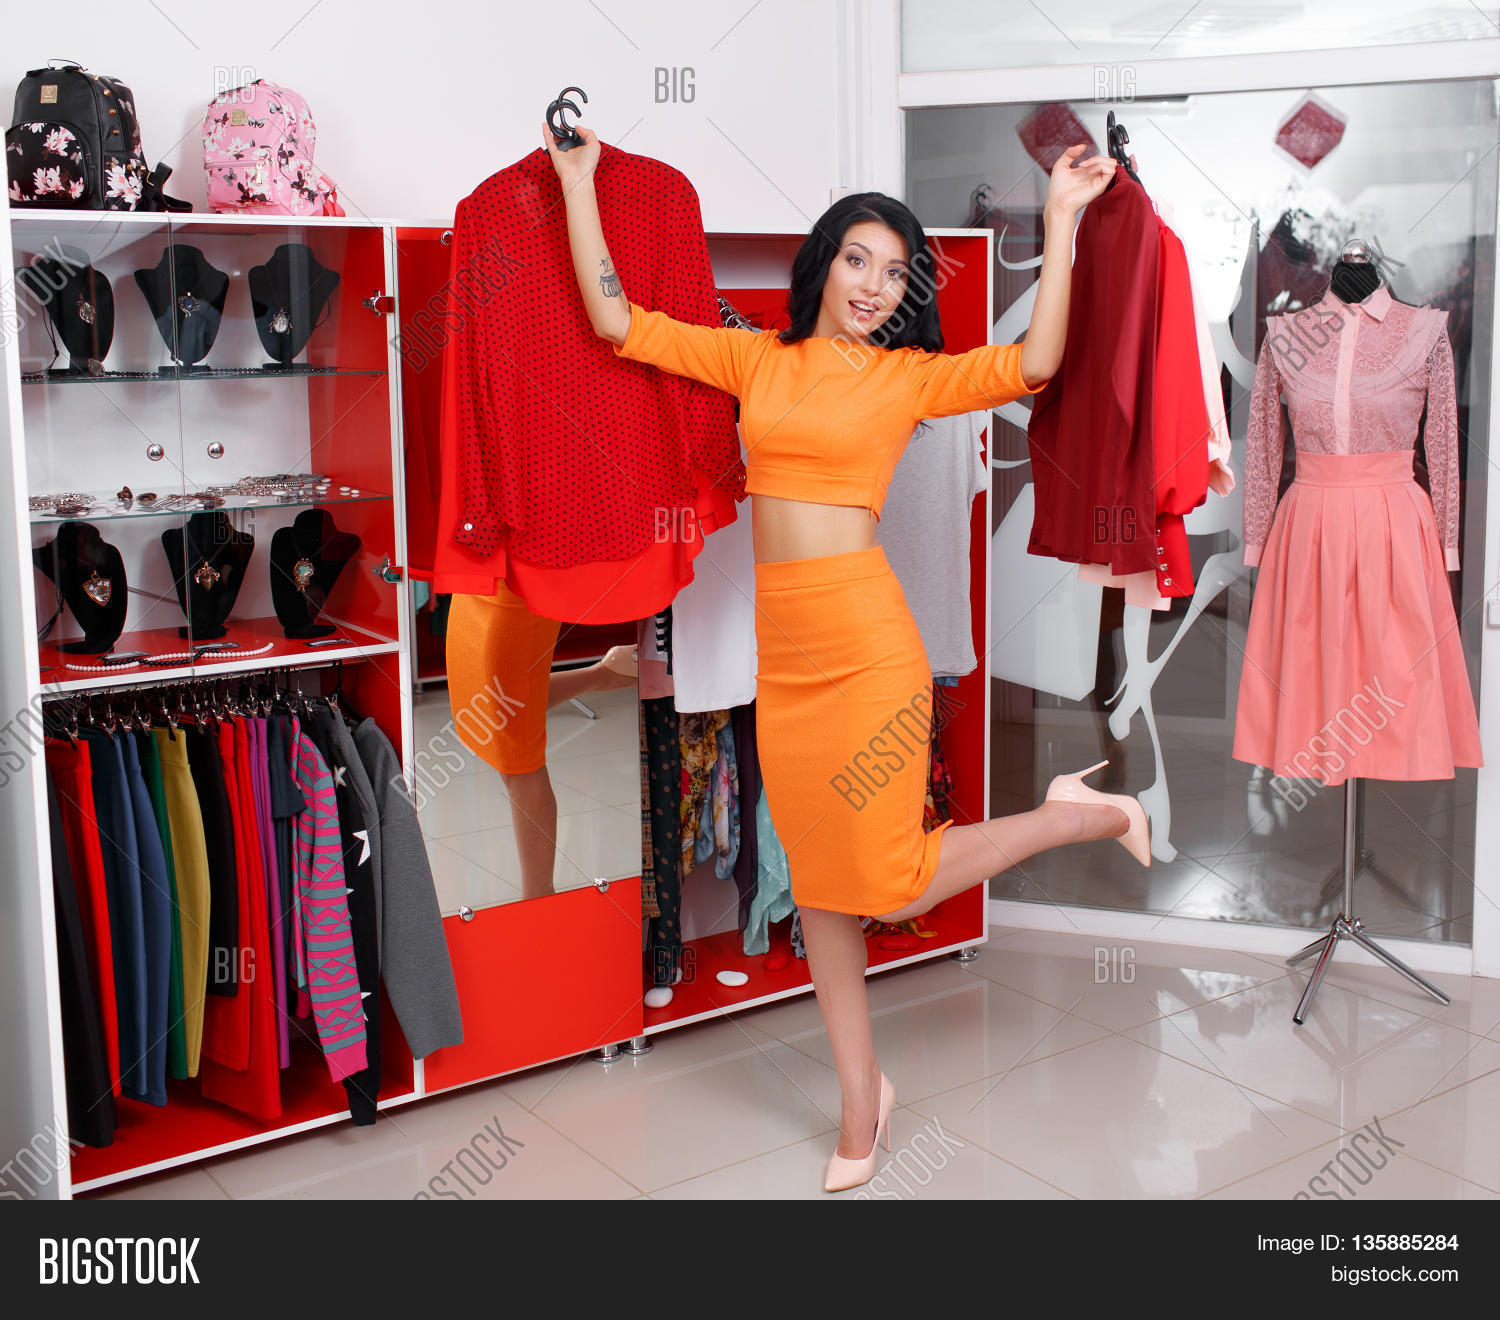 3db6569faebfc Young woman shopping in a clothing store. Woman shopping for dress in  clothing retail store